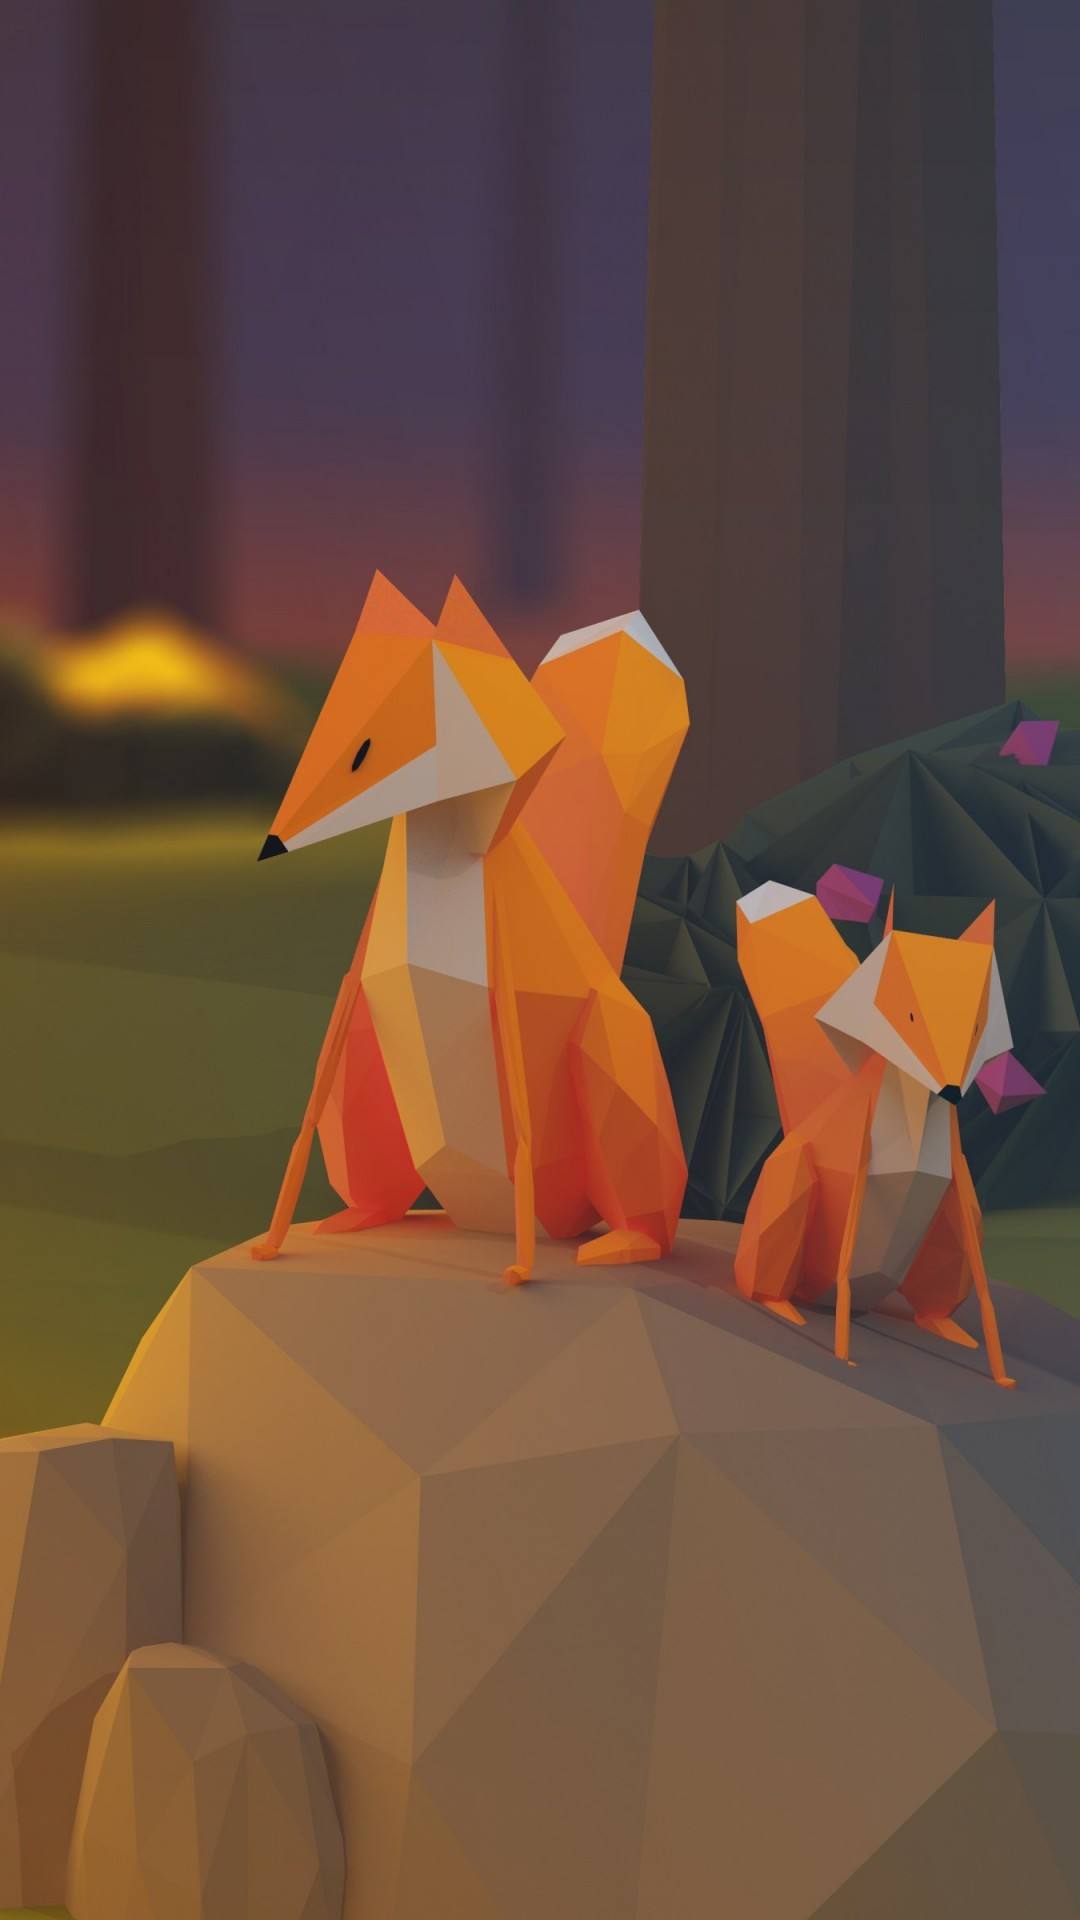 Low Poly Foxes Wallpaper for SONY Xperia Z3